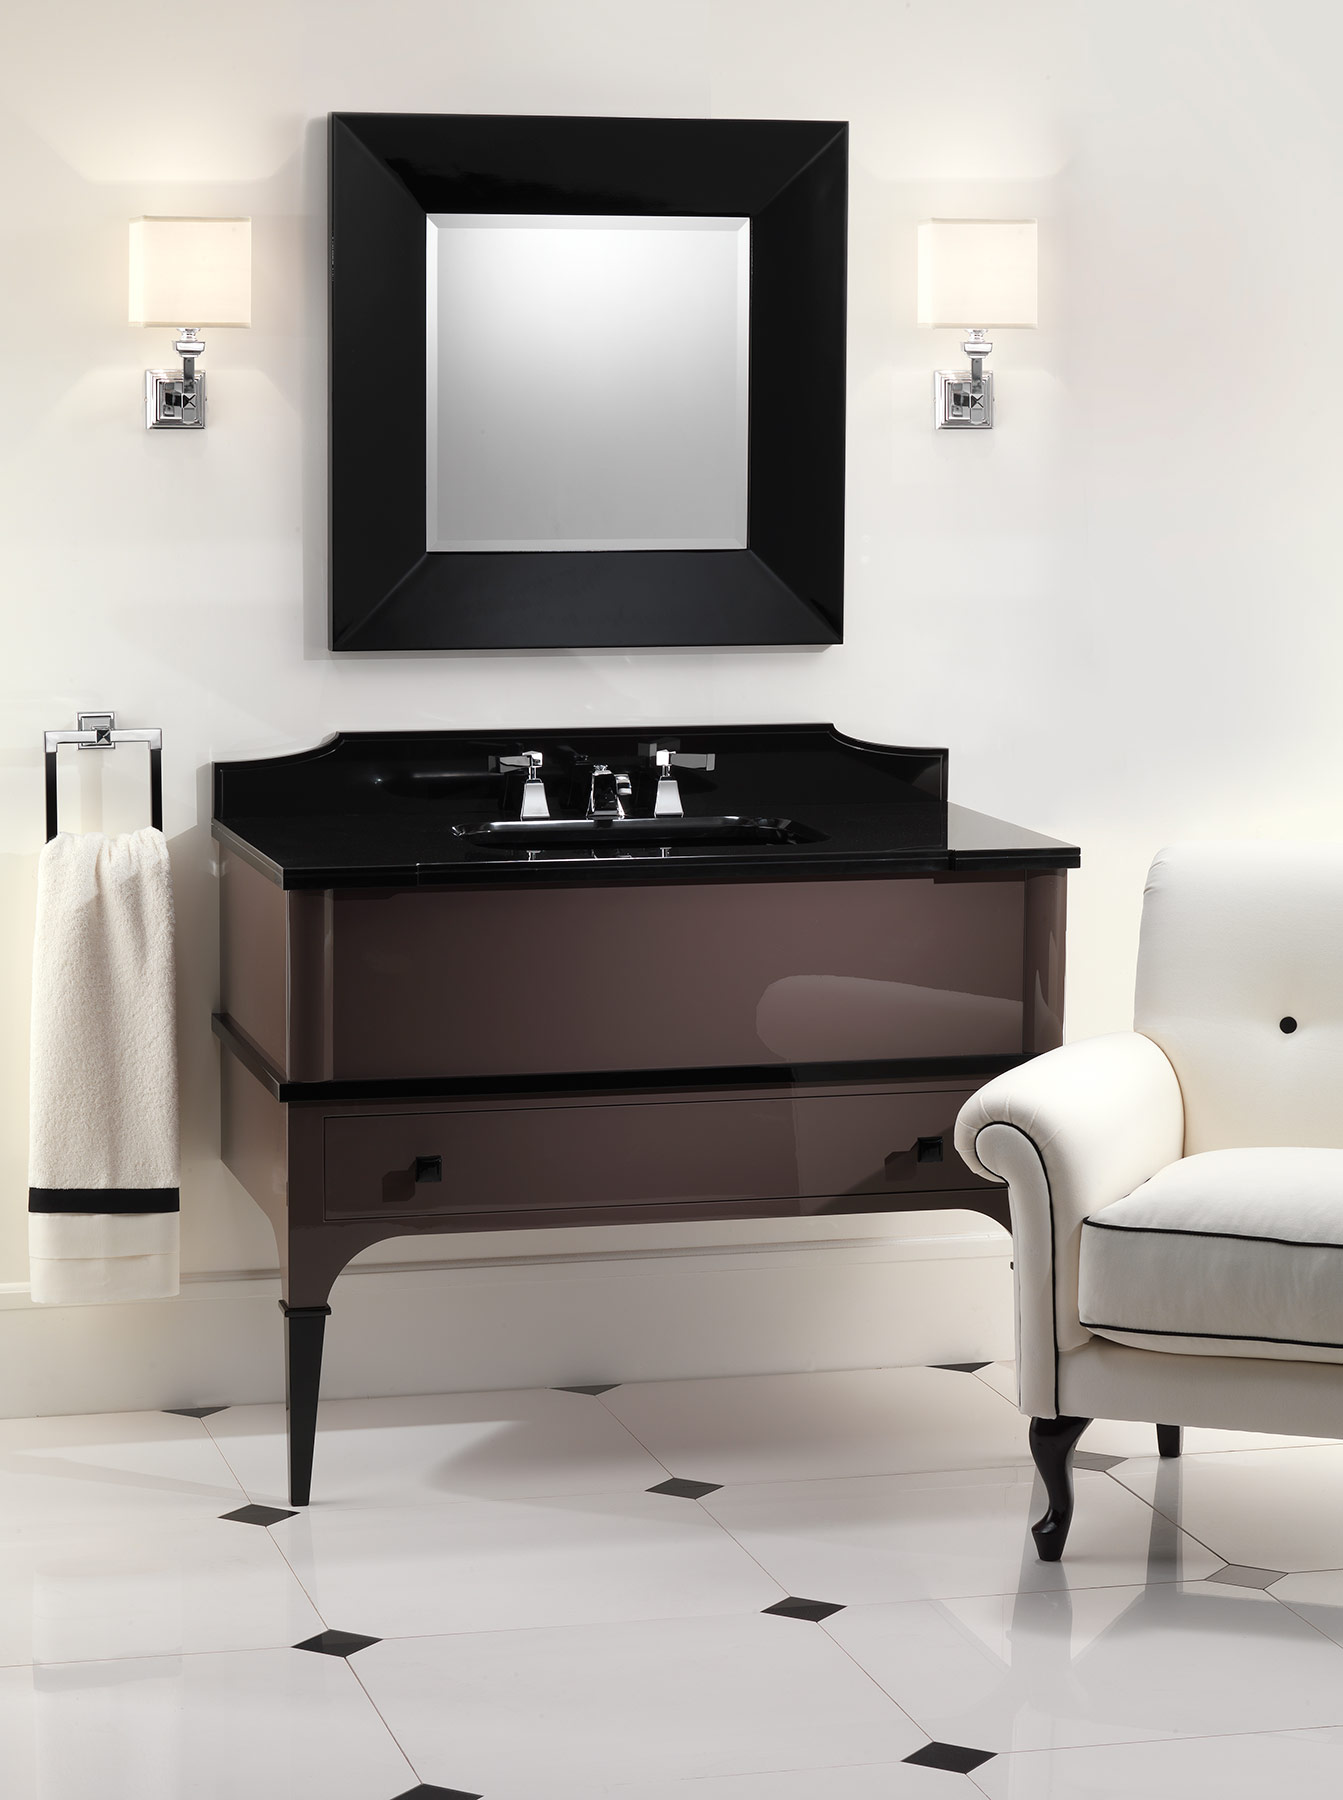 Transitional Suite Wall Mount Vanity Unit